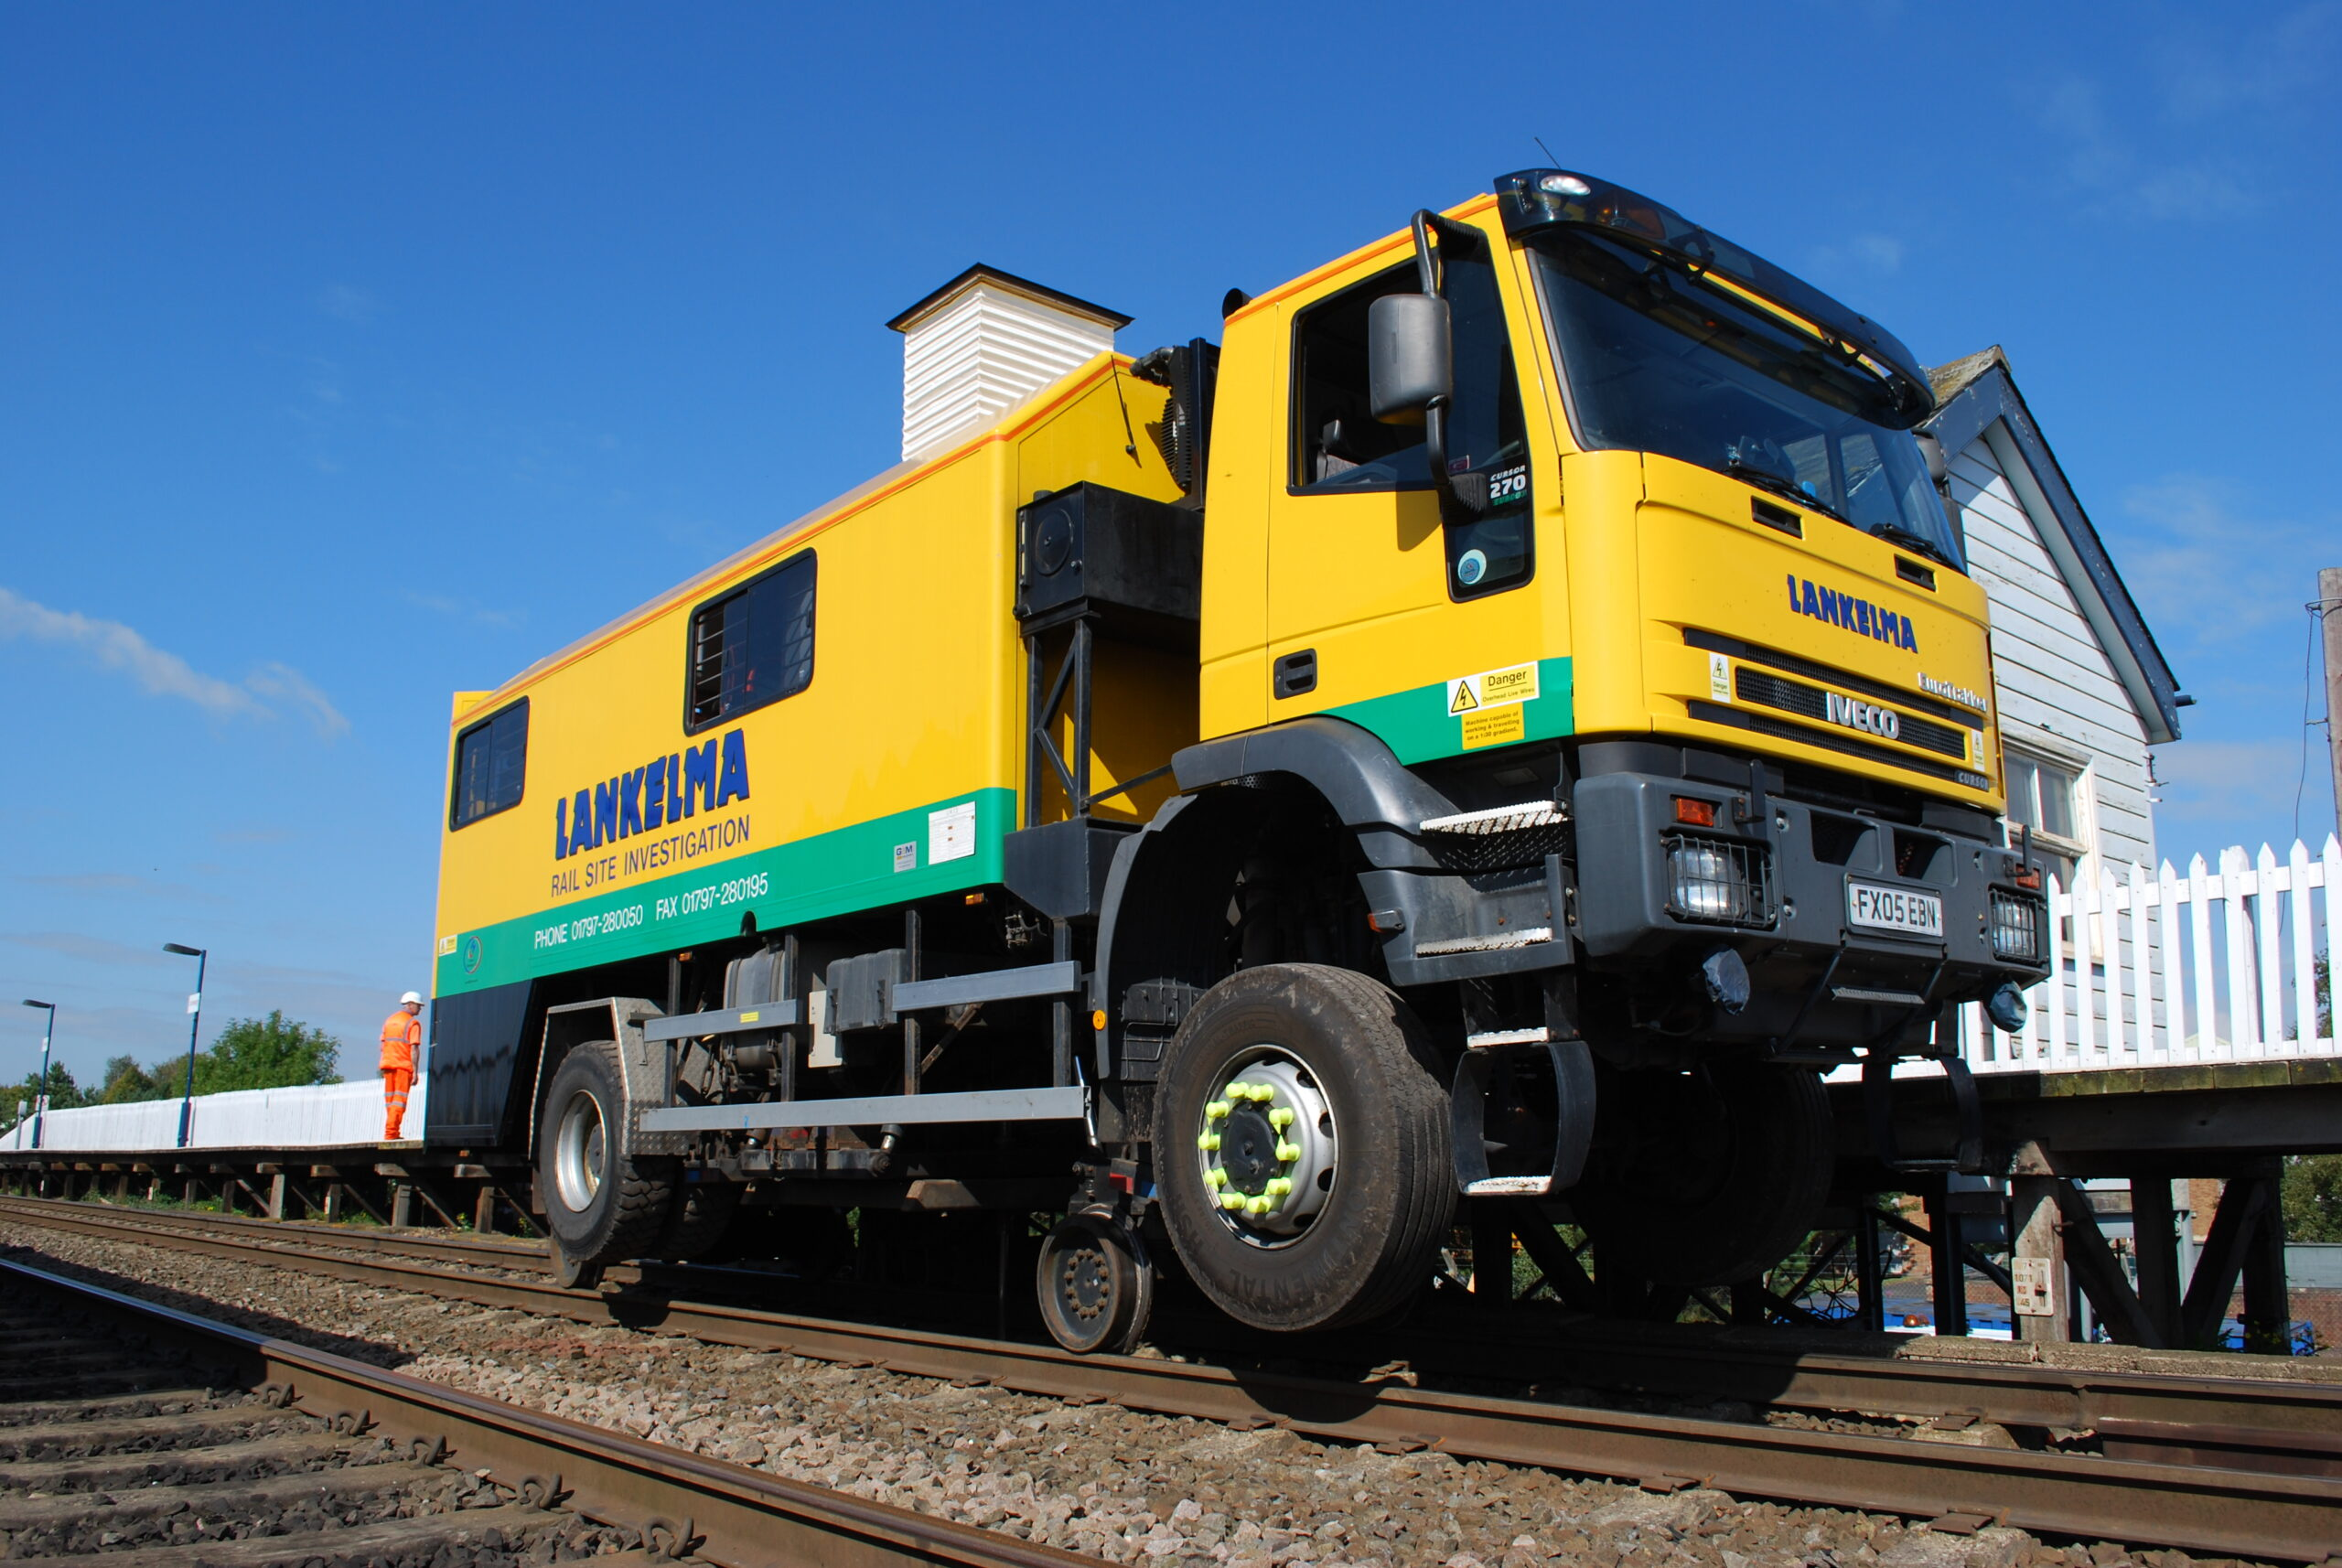 Rail wheels on Lankelma's RRV (UK12) allow travel on track